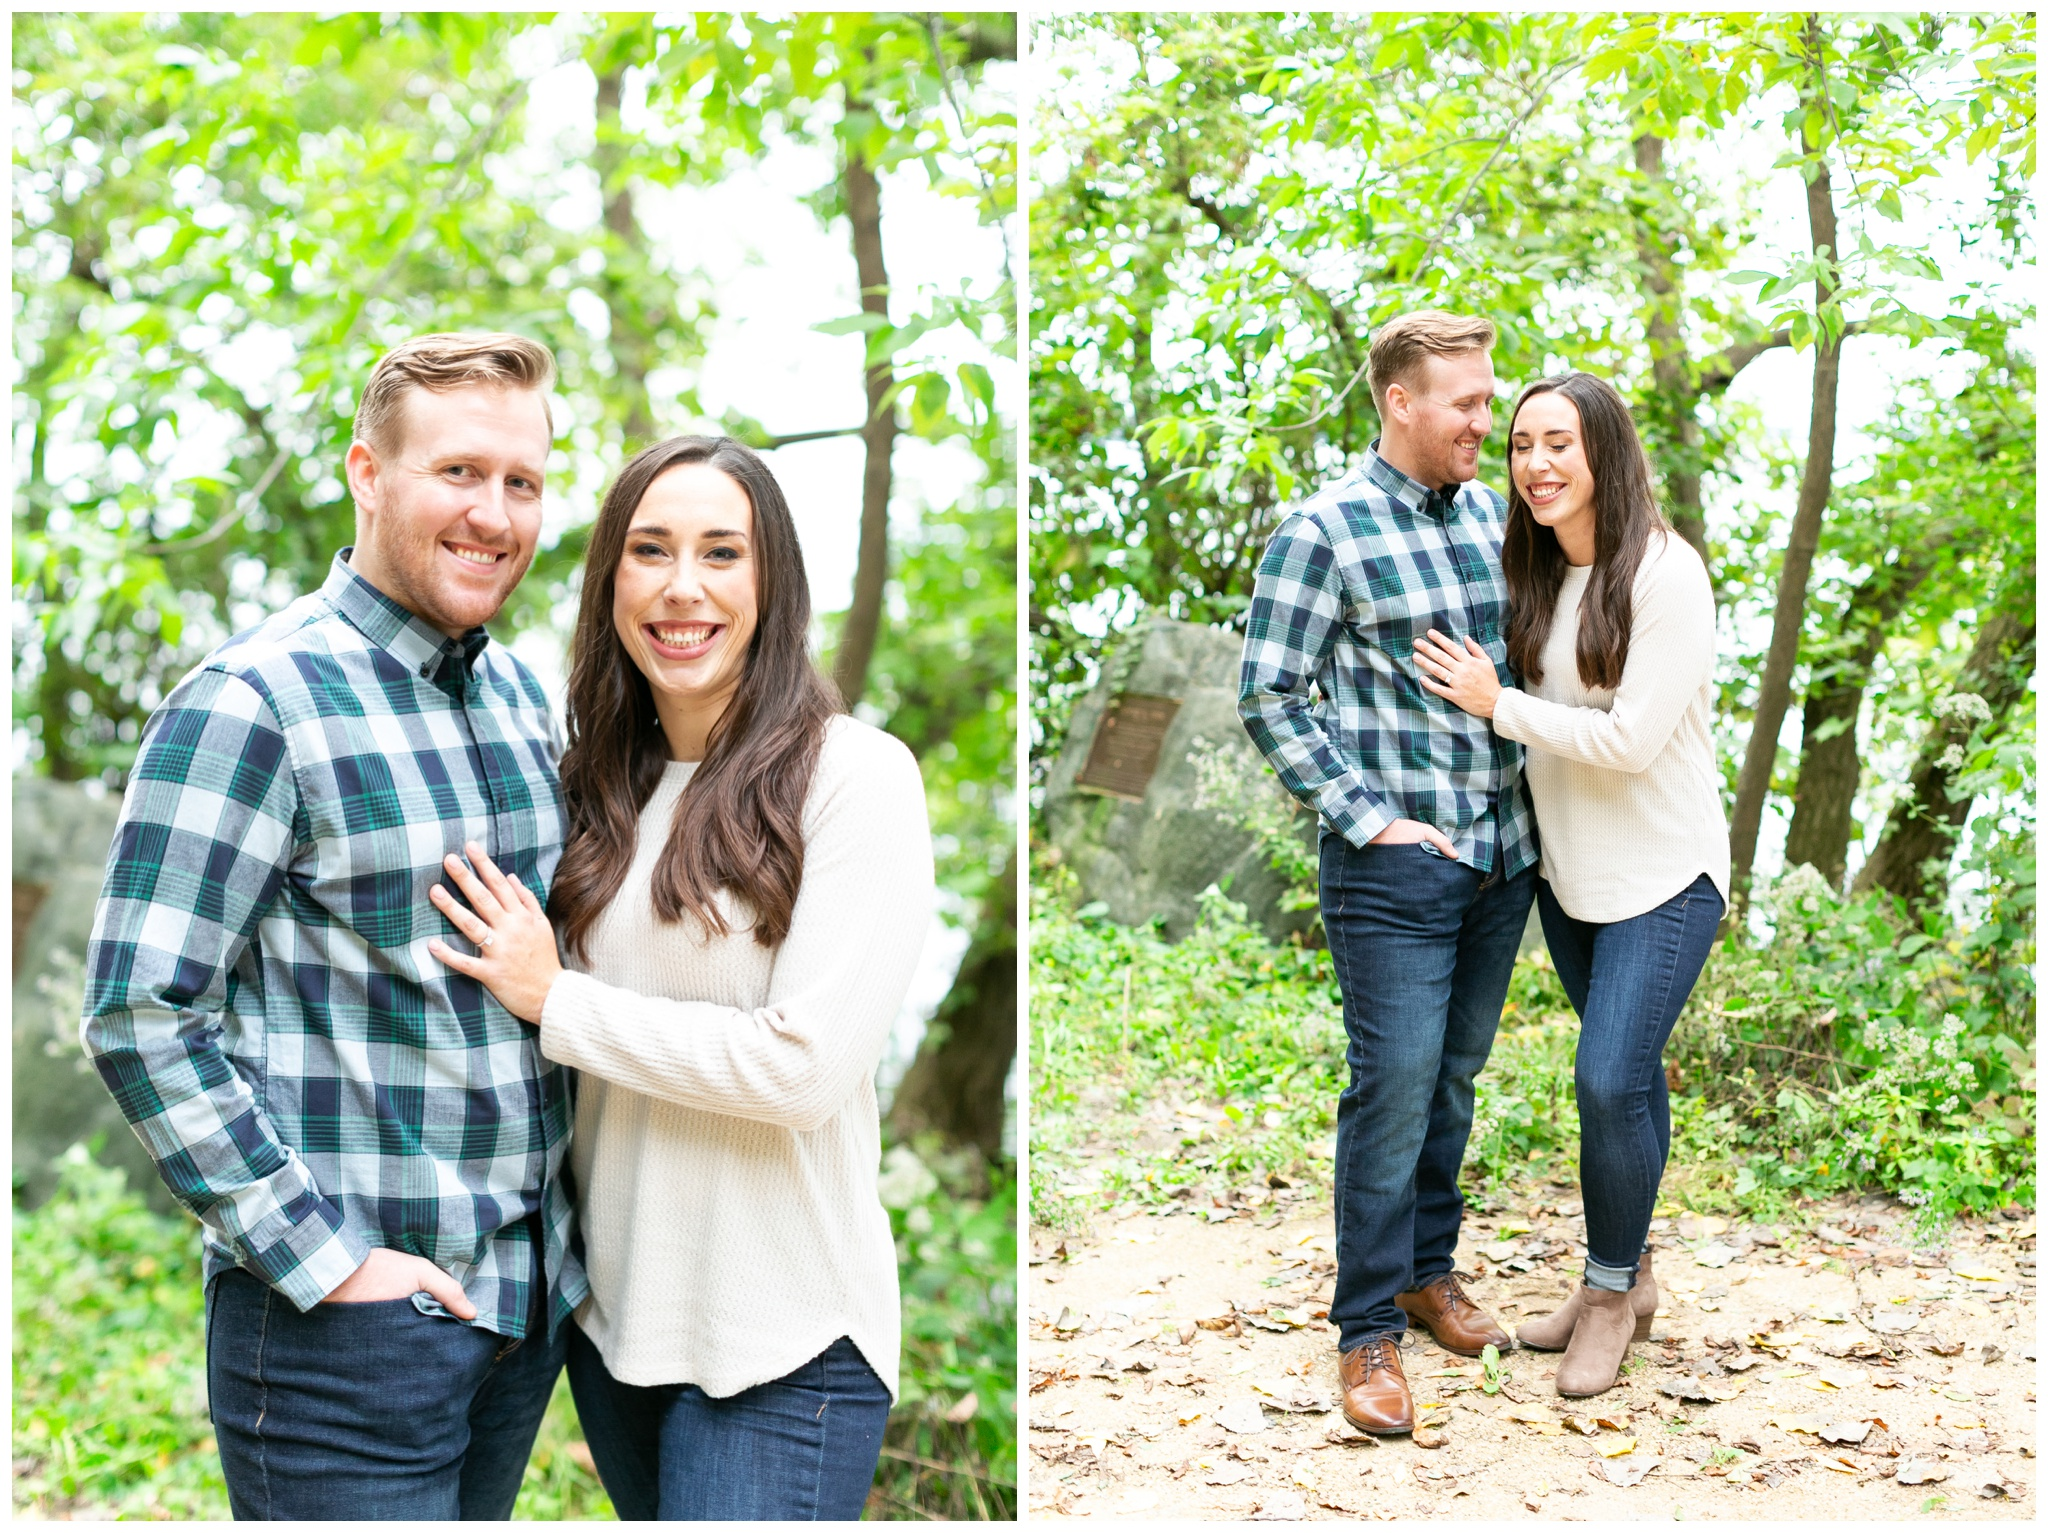 memorial_union_engagement_session_madison_wisconsin_1642.jpg